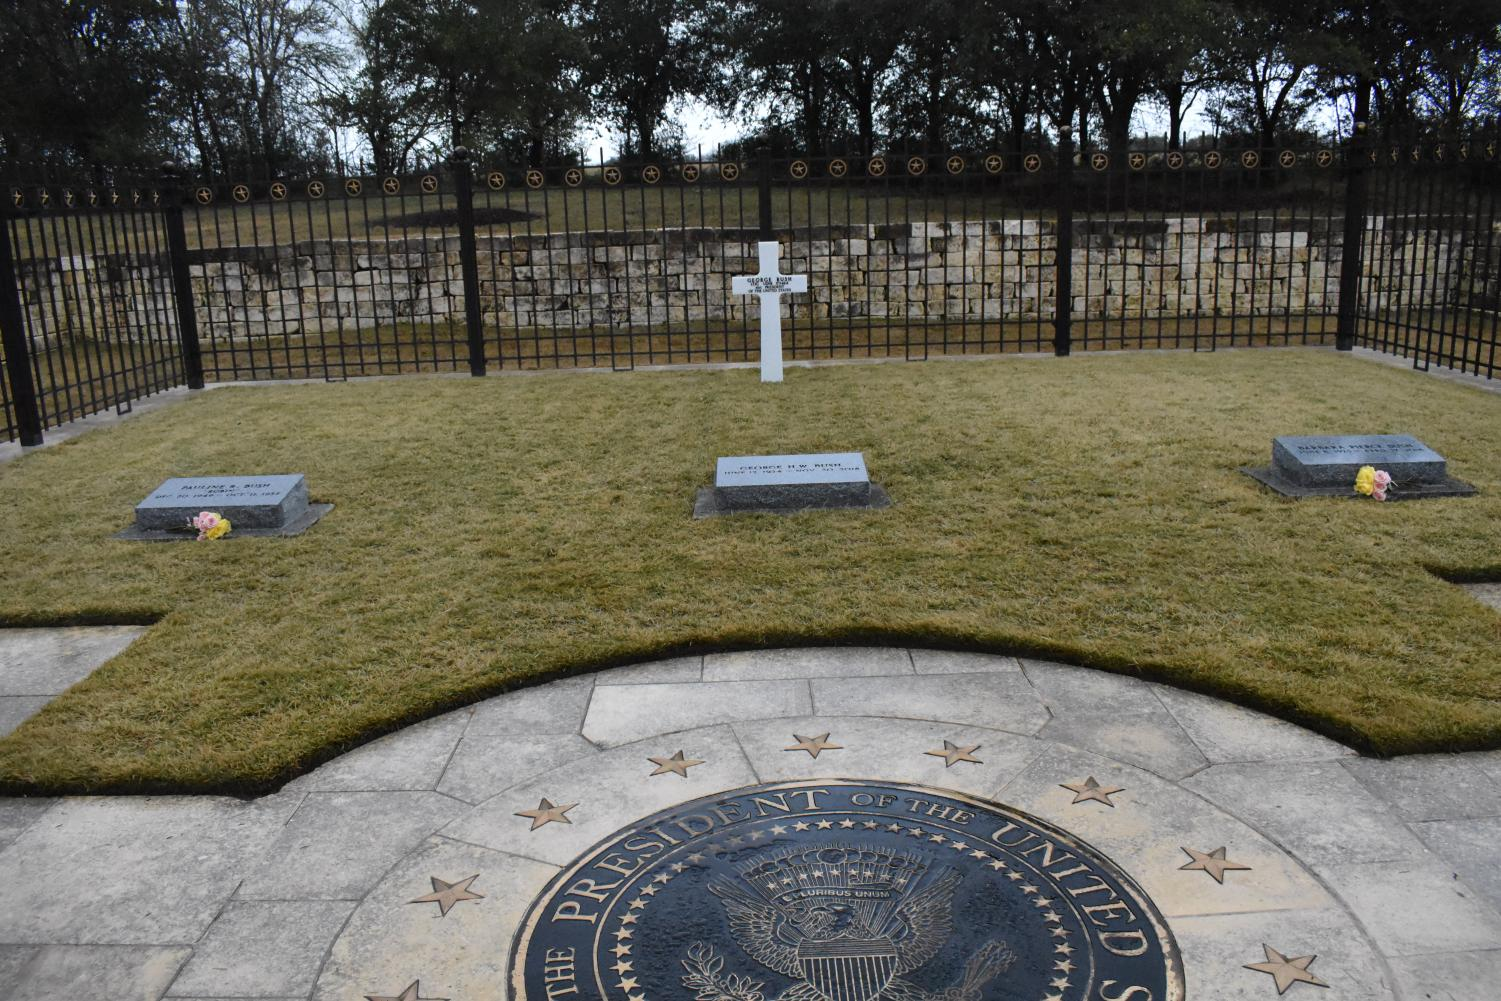 George+H.W.+Bush+is+buried+next+to+his+wife+Barbara+and+daughter+Robin.